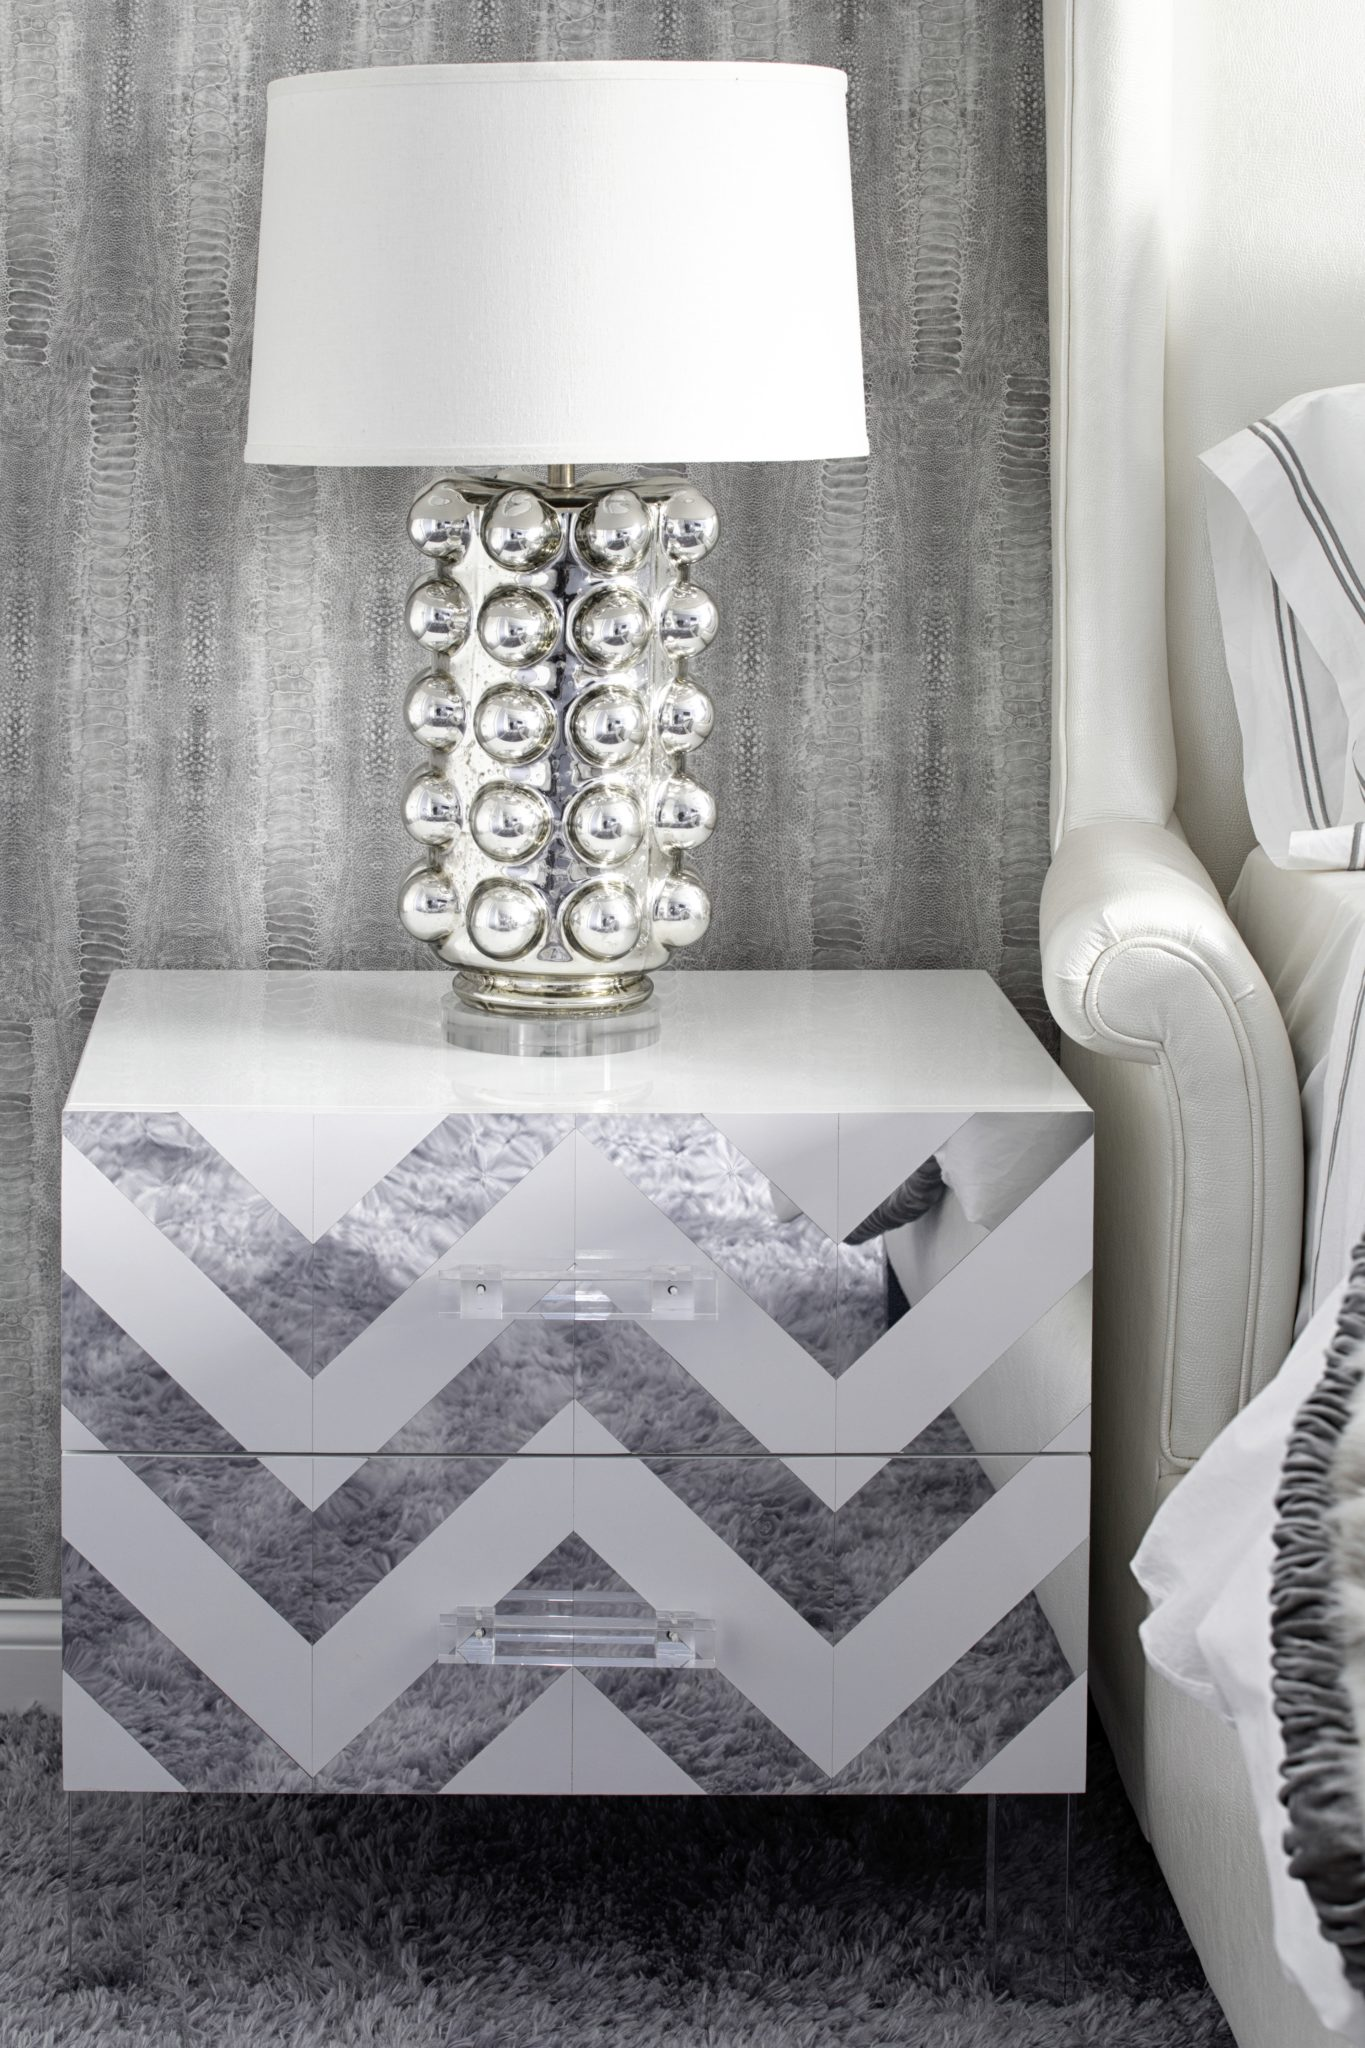 Metallics shine with a chevron mirror side table, mercury glass lamp & wallpaper by Laura Michaels Design